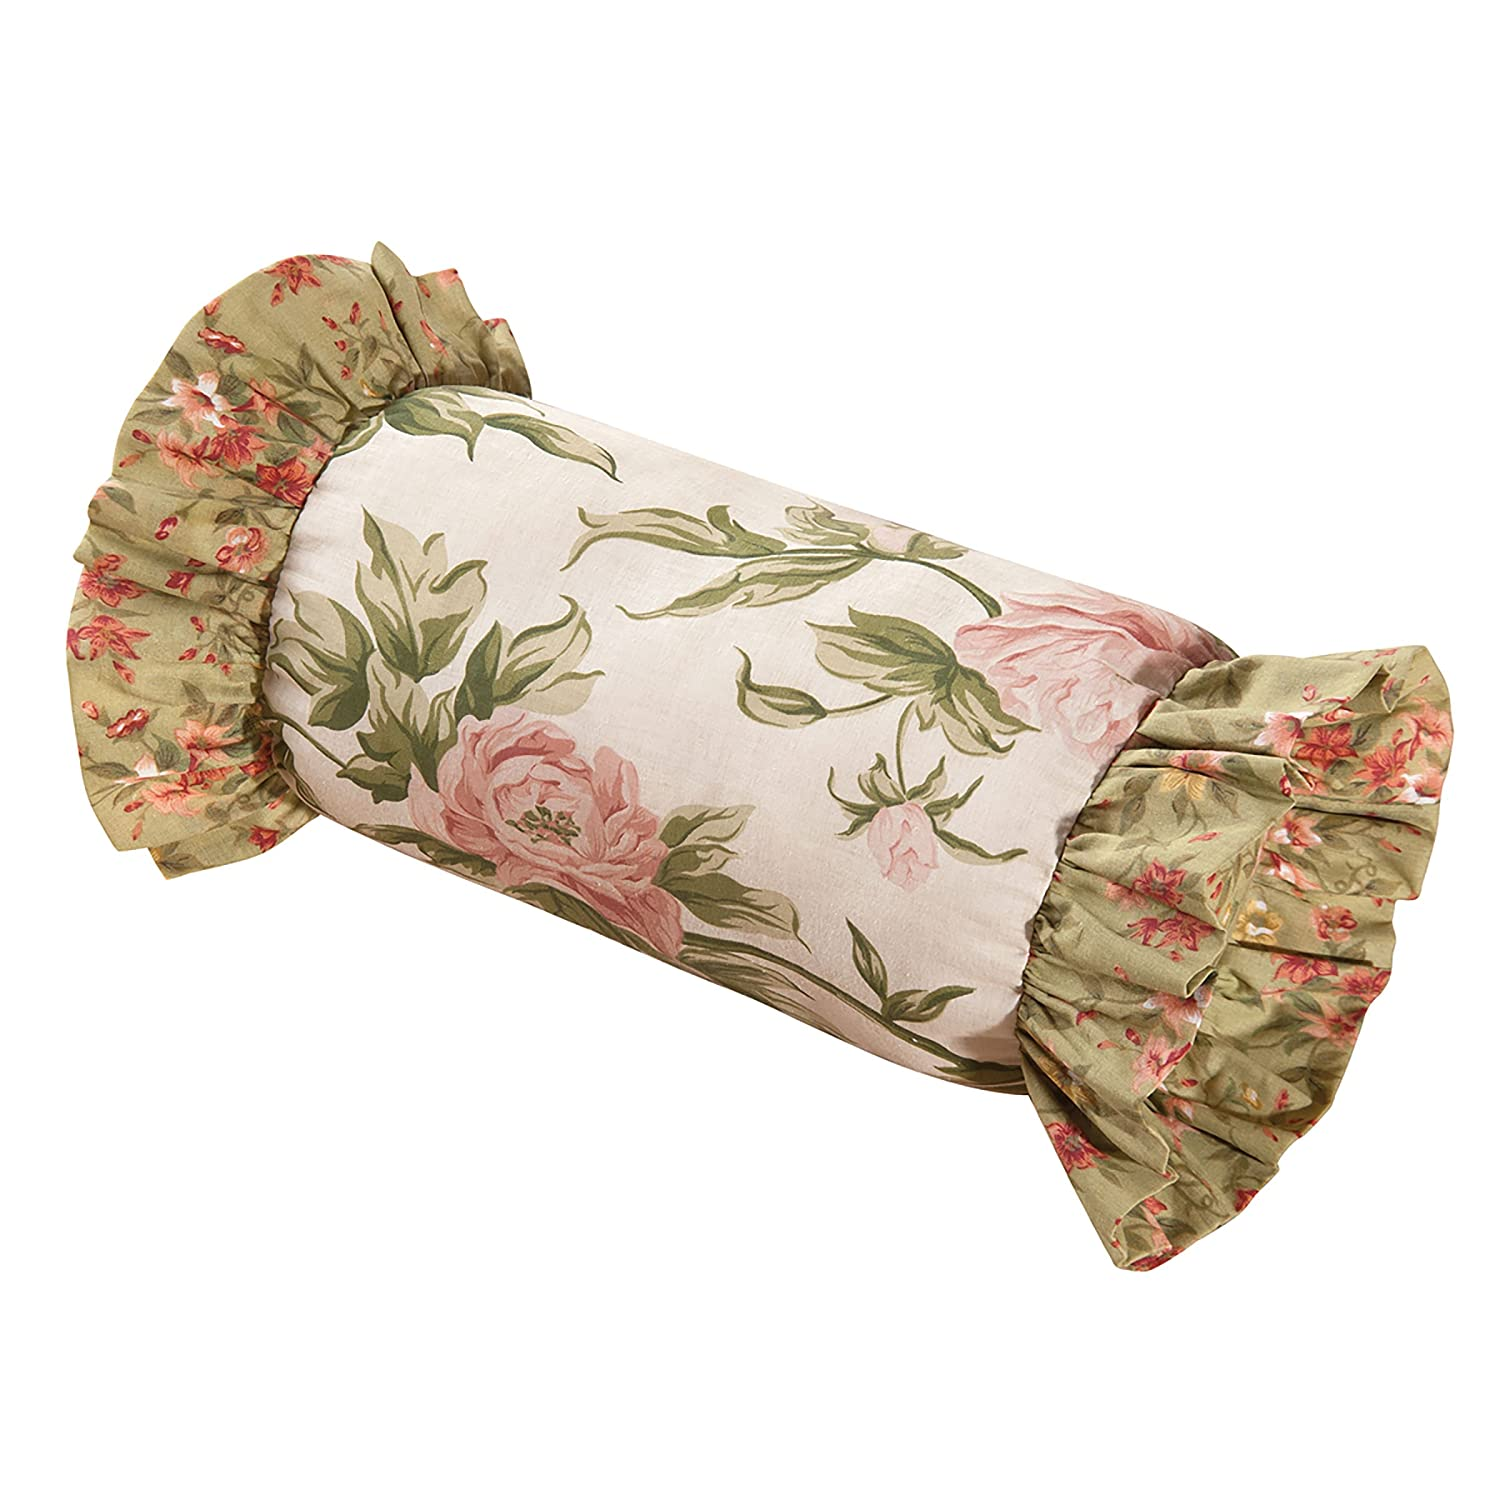 C and F Enterprises Garden Dream 16 x 16 in. Ruffled Pillow C&F